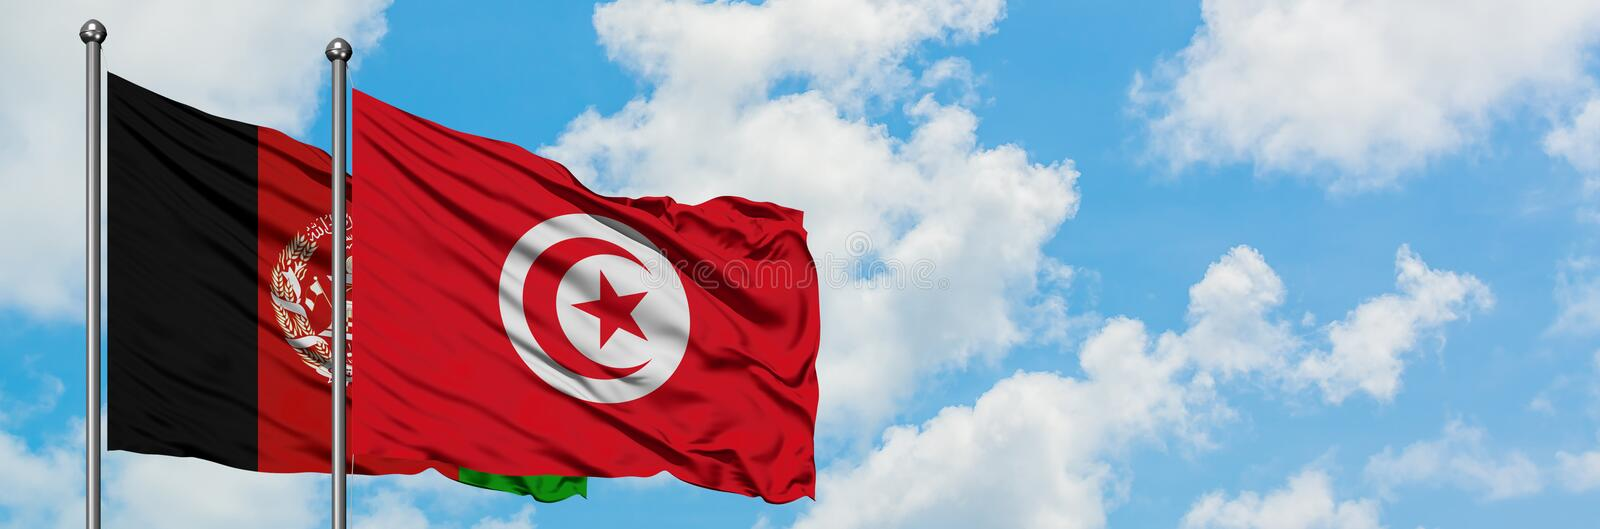 Afghanistan and Tunisia flag waving in the wind against white cloudy blue sky together. Diplomacy concept, international relations.  stock photos